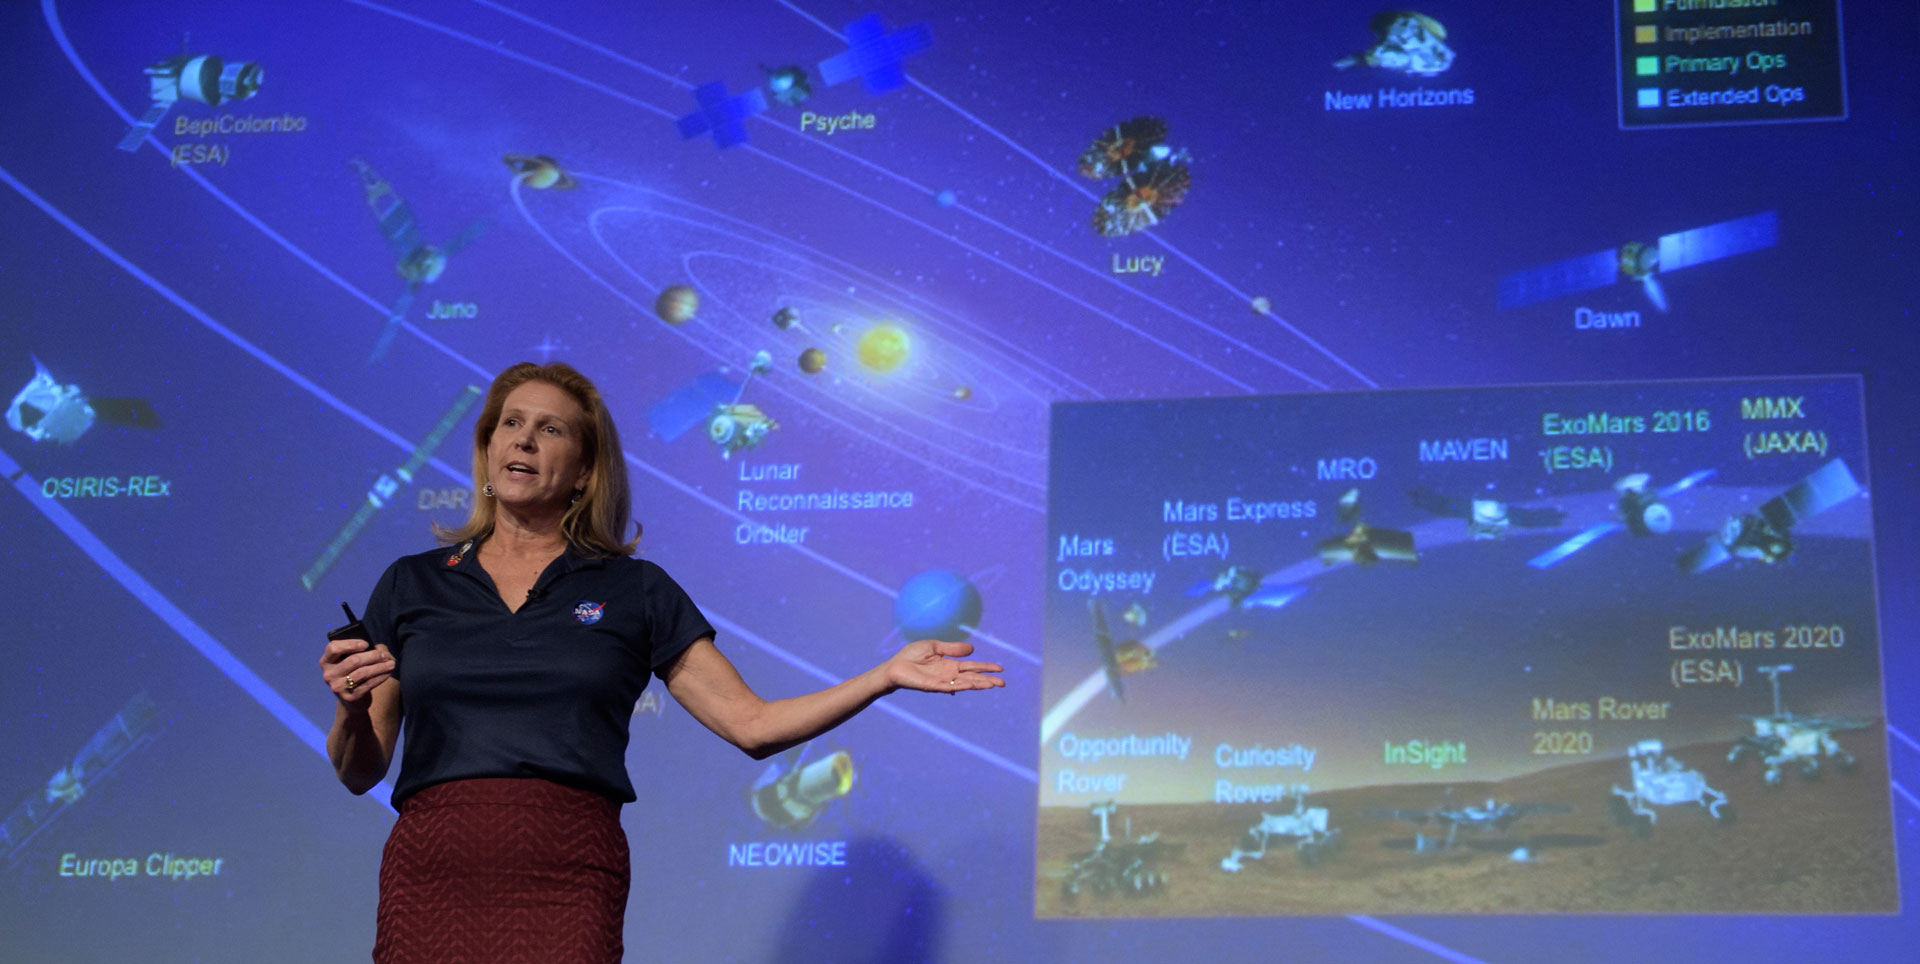 Lori Glaze in front of a giant screen showing all NASA space missions.